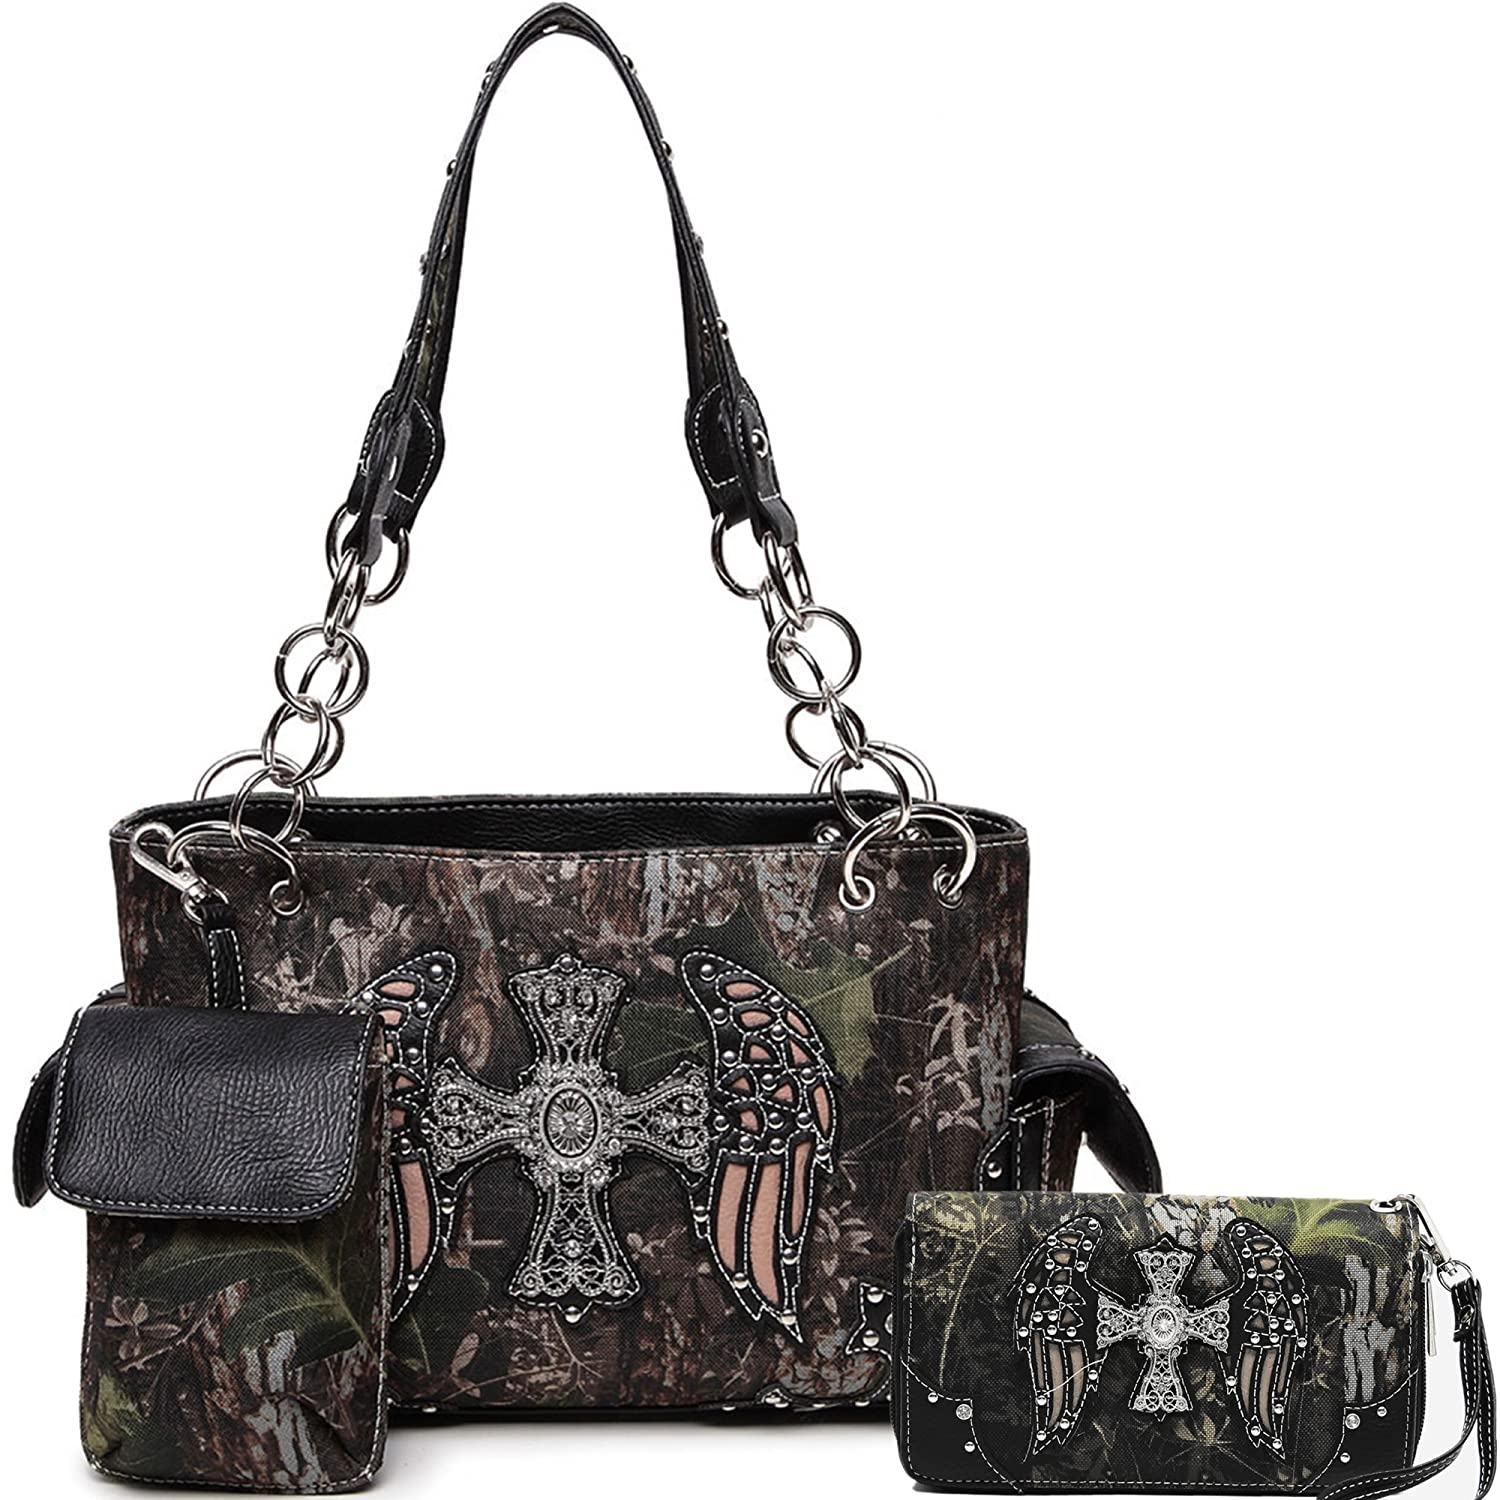 Cowgirl Trendy Western Concealed Carry Camouflage Cross Purse Handbag Shoulder Bag Wallet Set Black